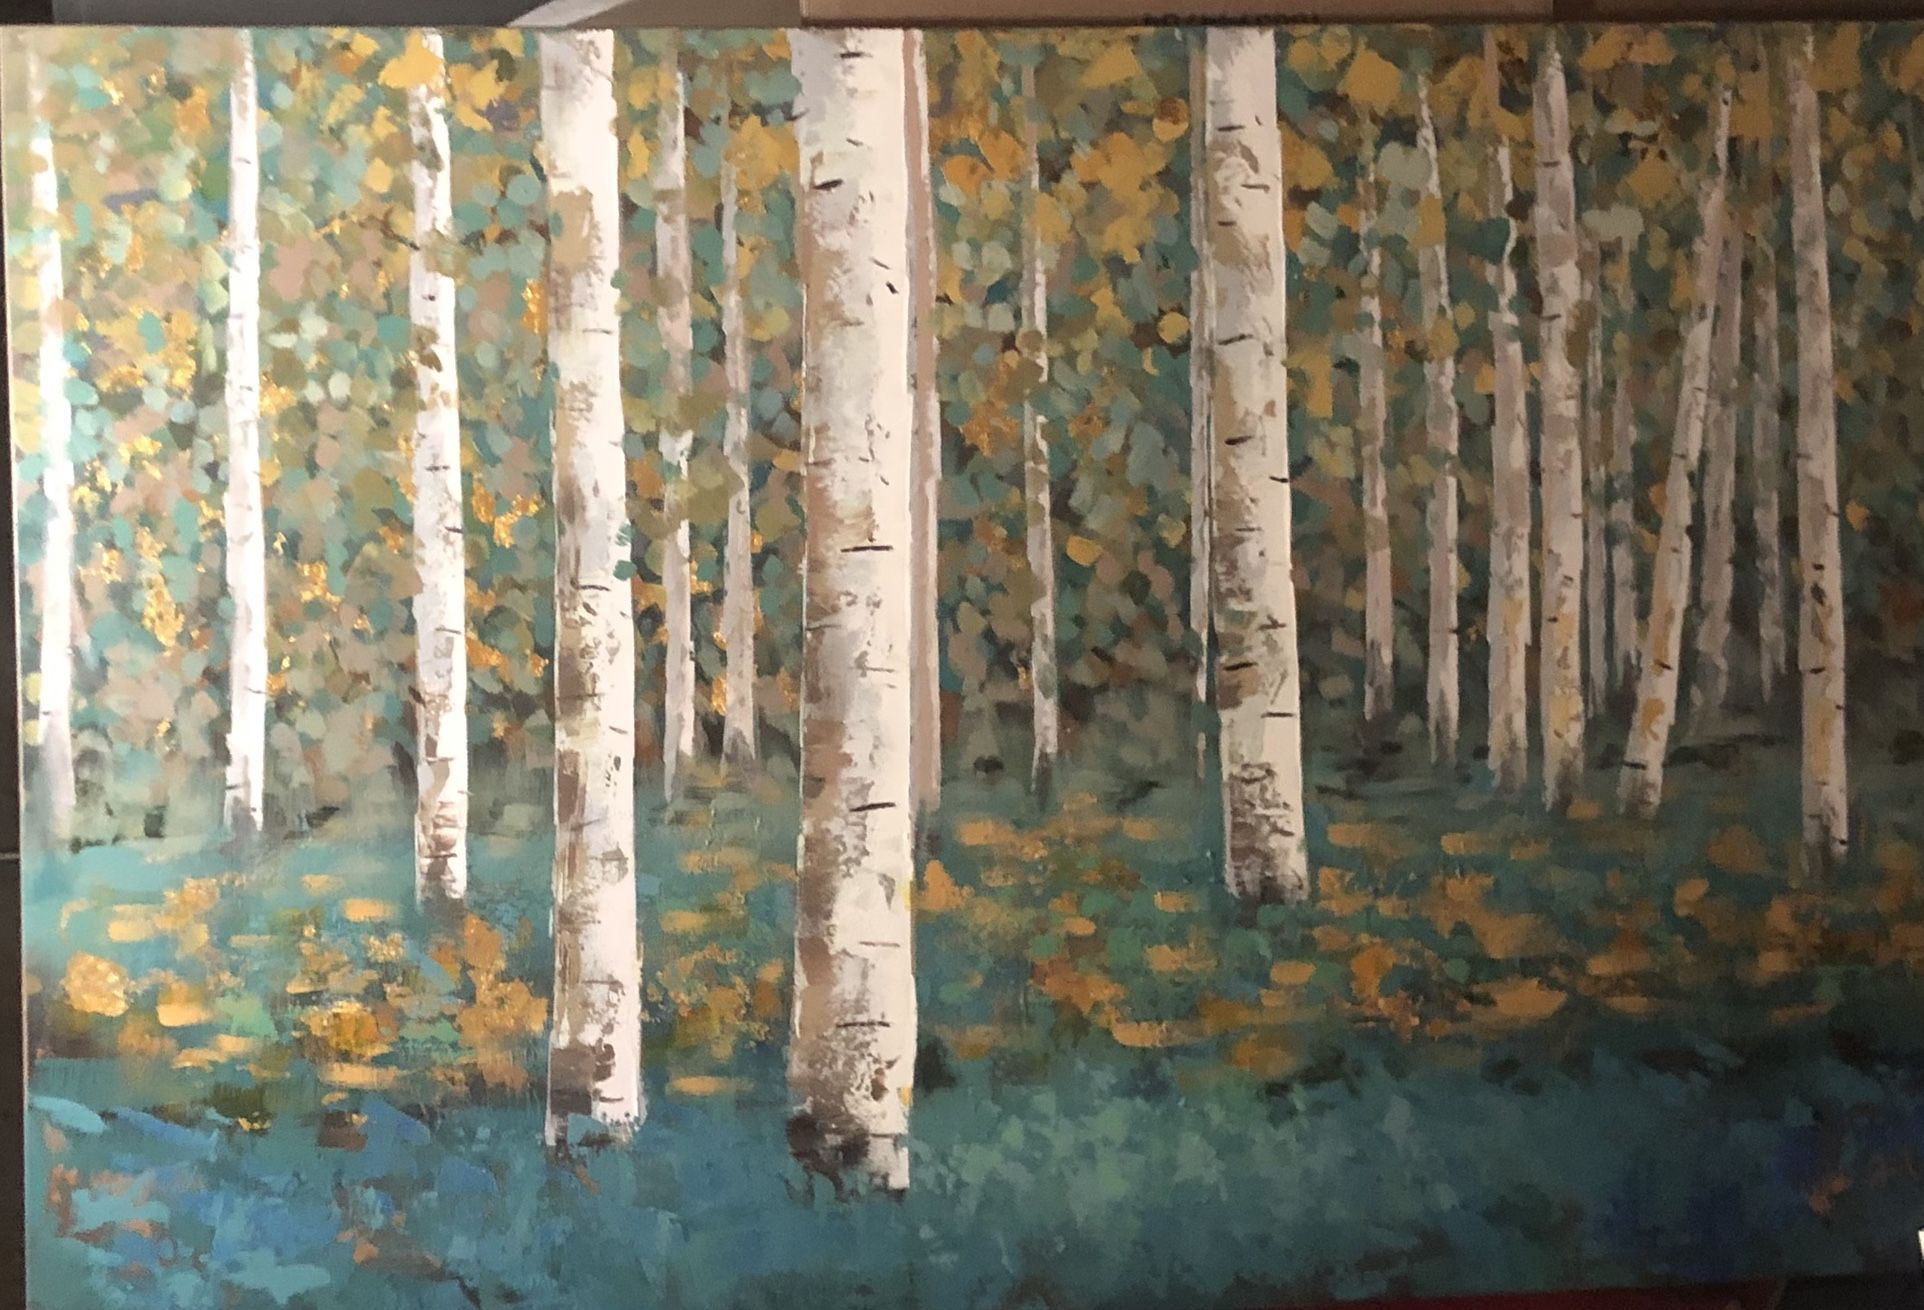 Canvas Wall art - Pier one imports